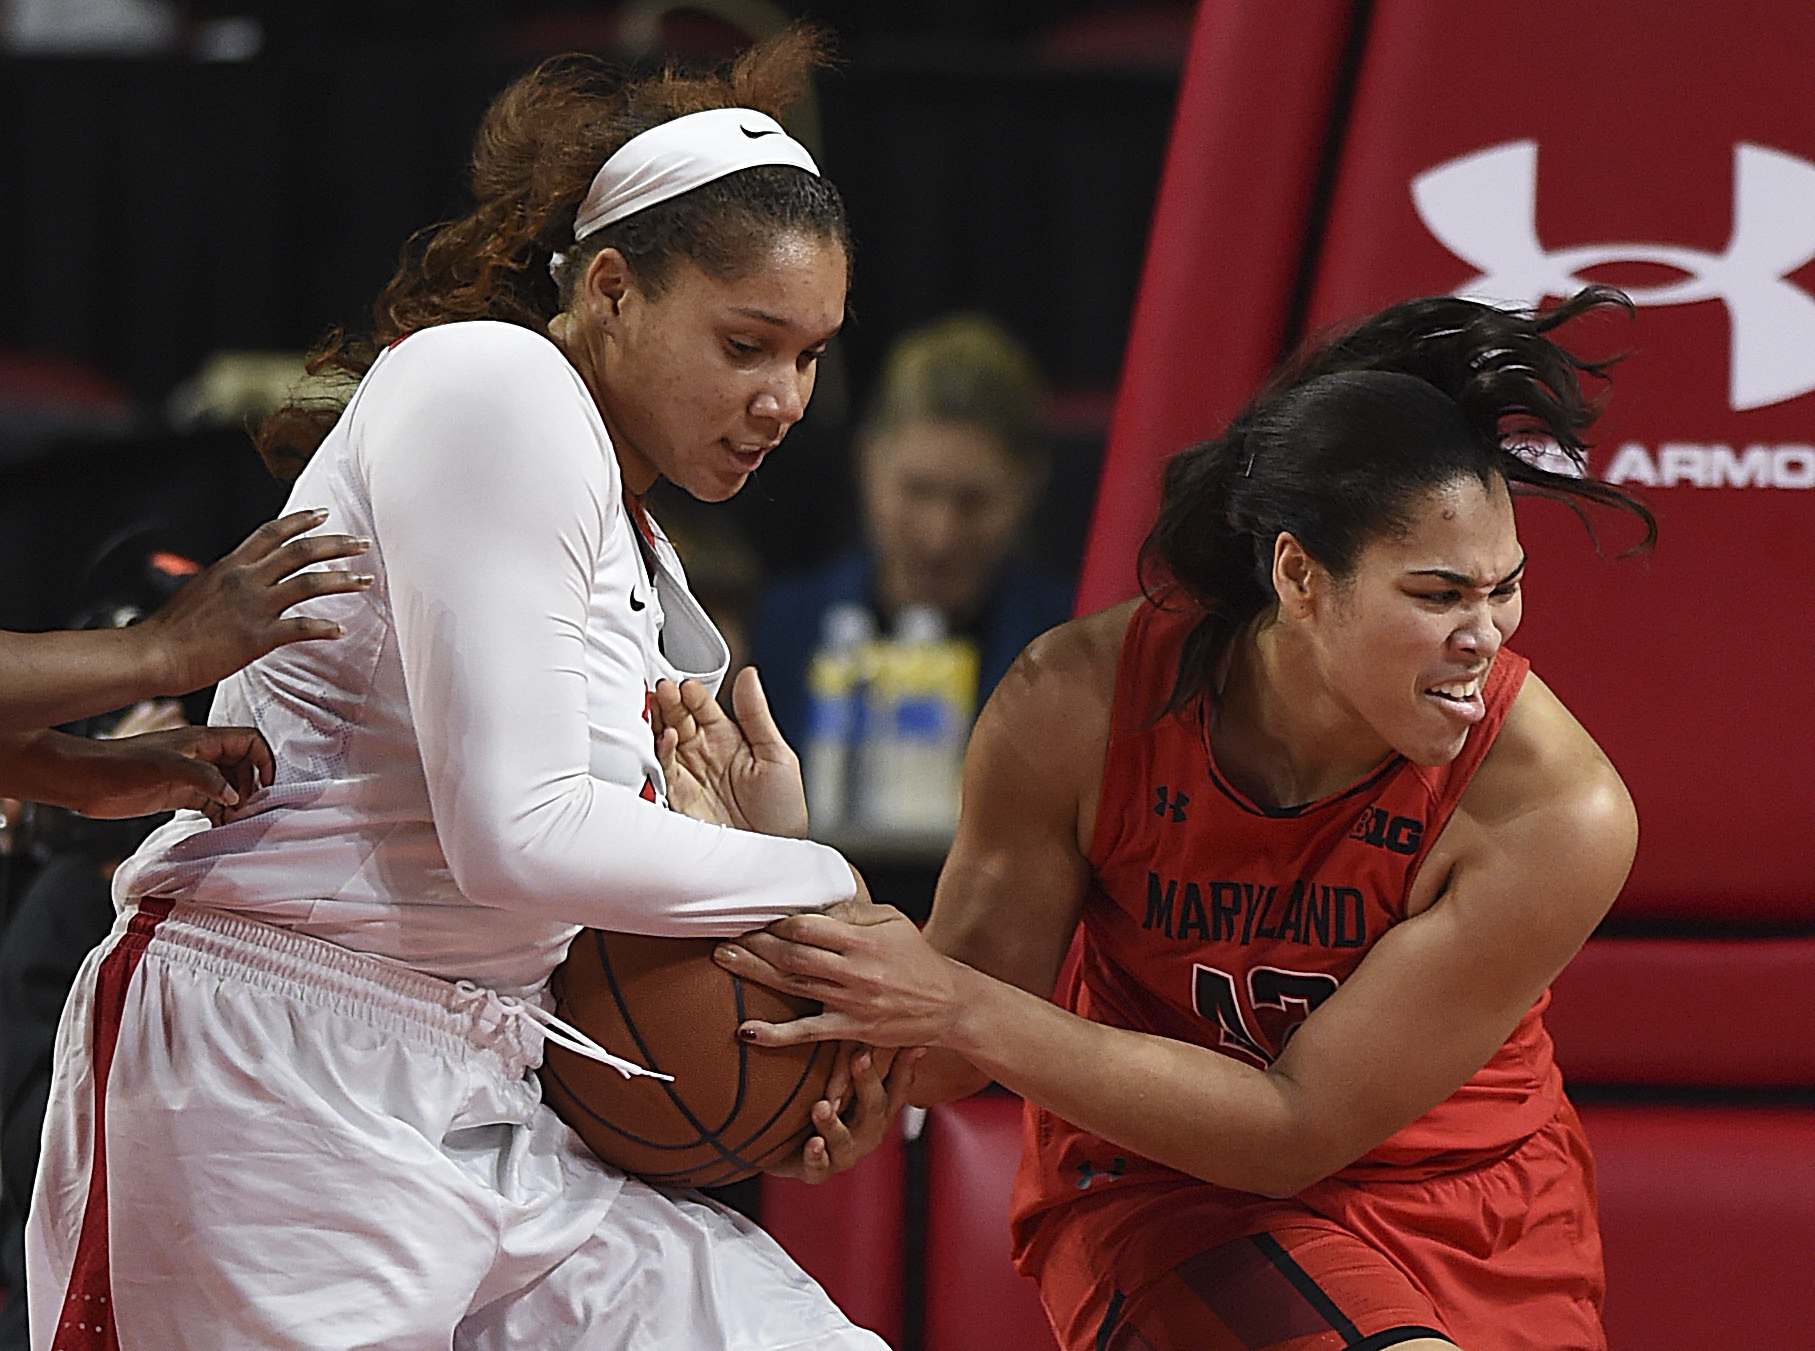 Maryland's Brionna Jones, right, and Rutgers Jordan Wallace fight for a rebound during the first half of an NCAA college basketball game, Sunday, Jan. 22, 2017, in College Park, Md. (AP Photo/Gail Burton)